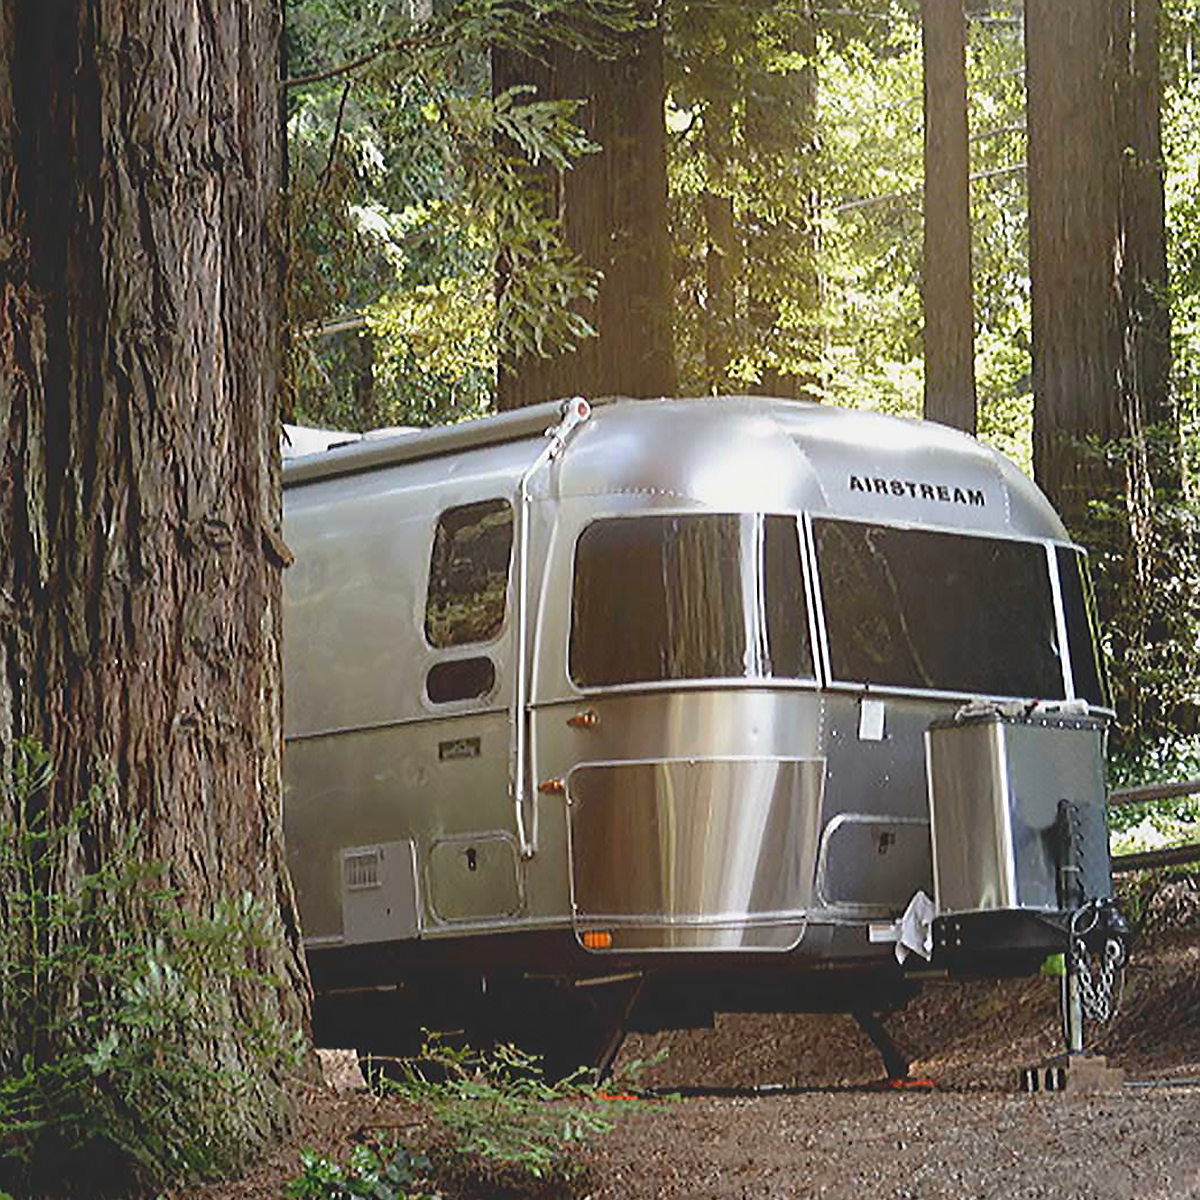 An Airstream trailer parked in the woods.